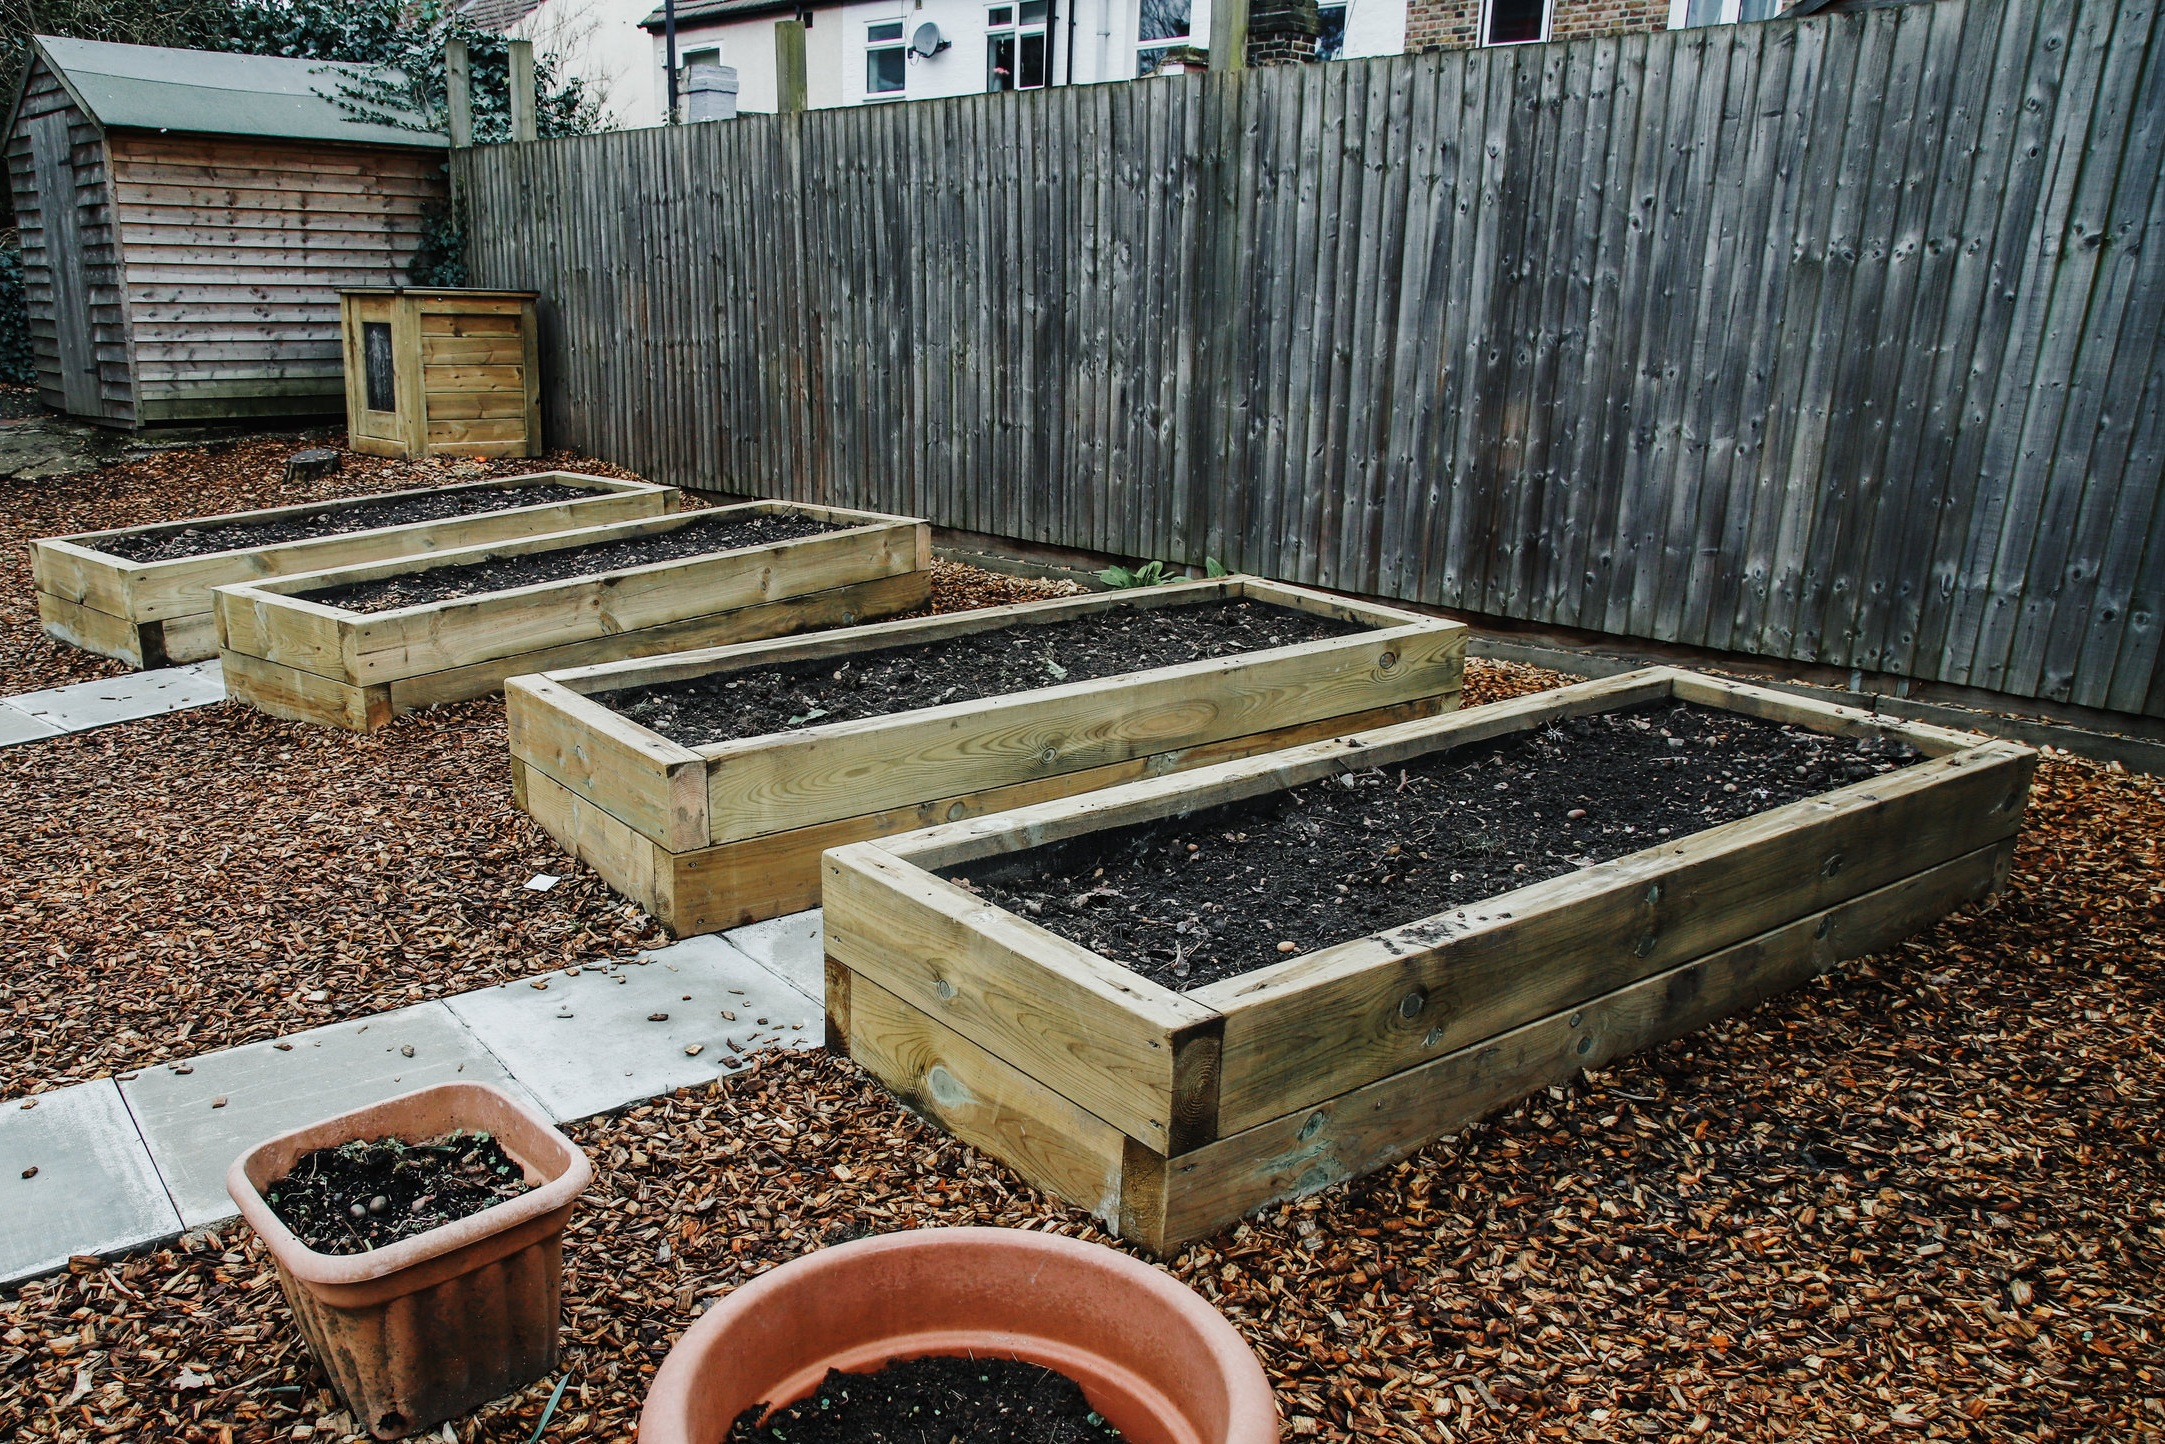 The beginnings of our vegetable garden (Les Enfants)